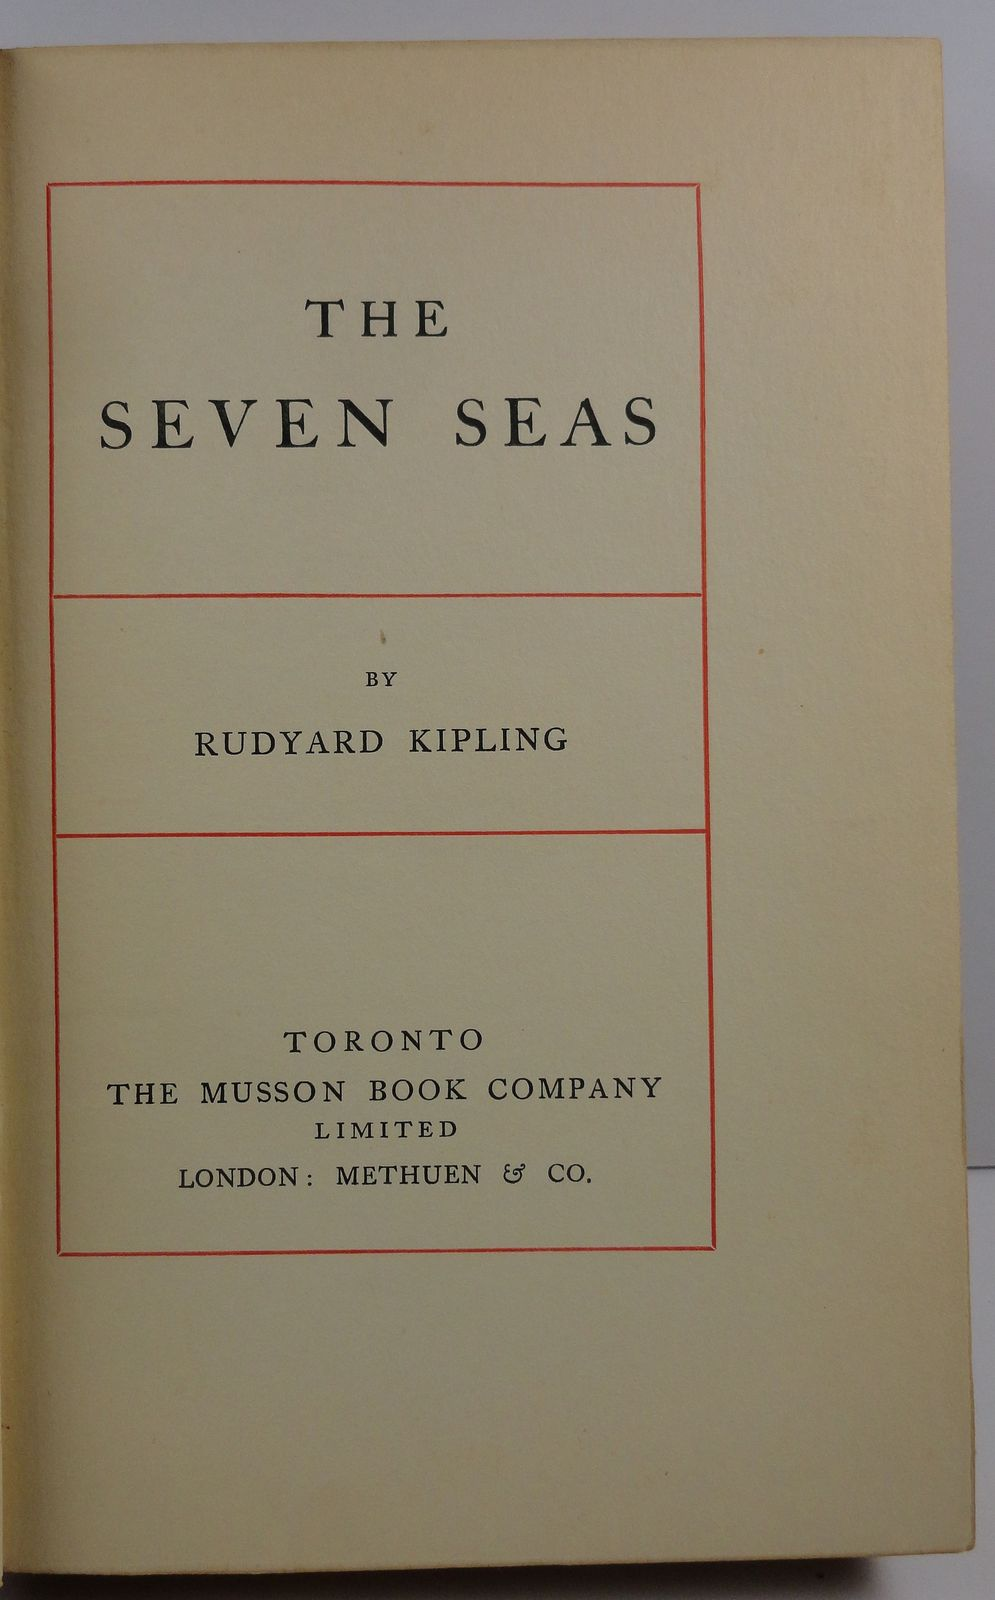 The Seven Seas by Rudyard Kipling The Musson Book Company